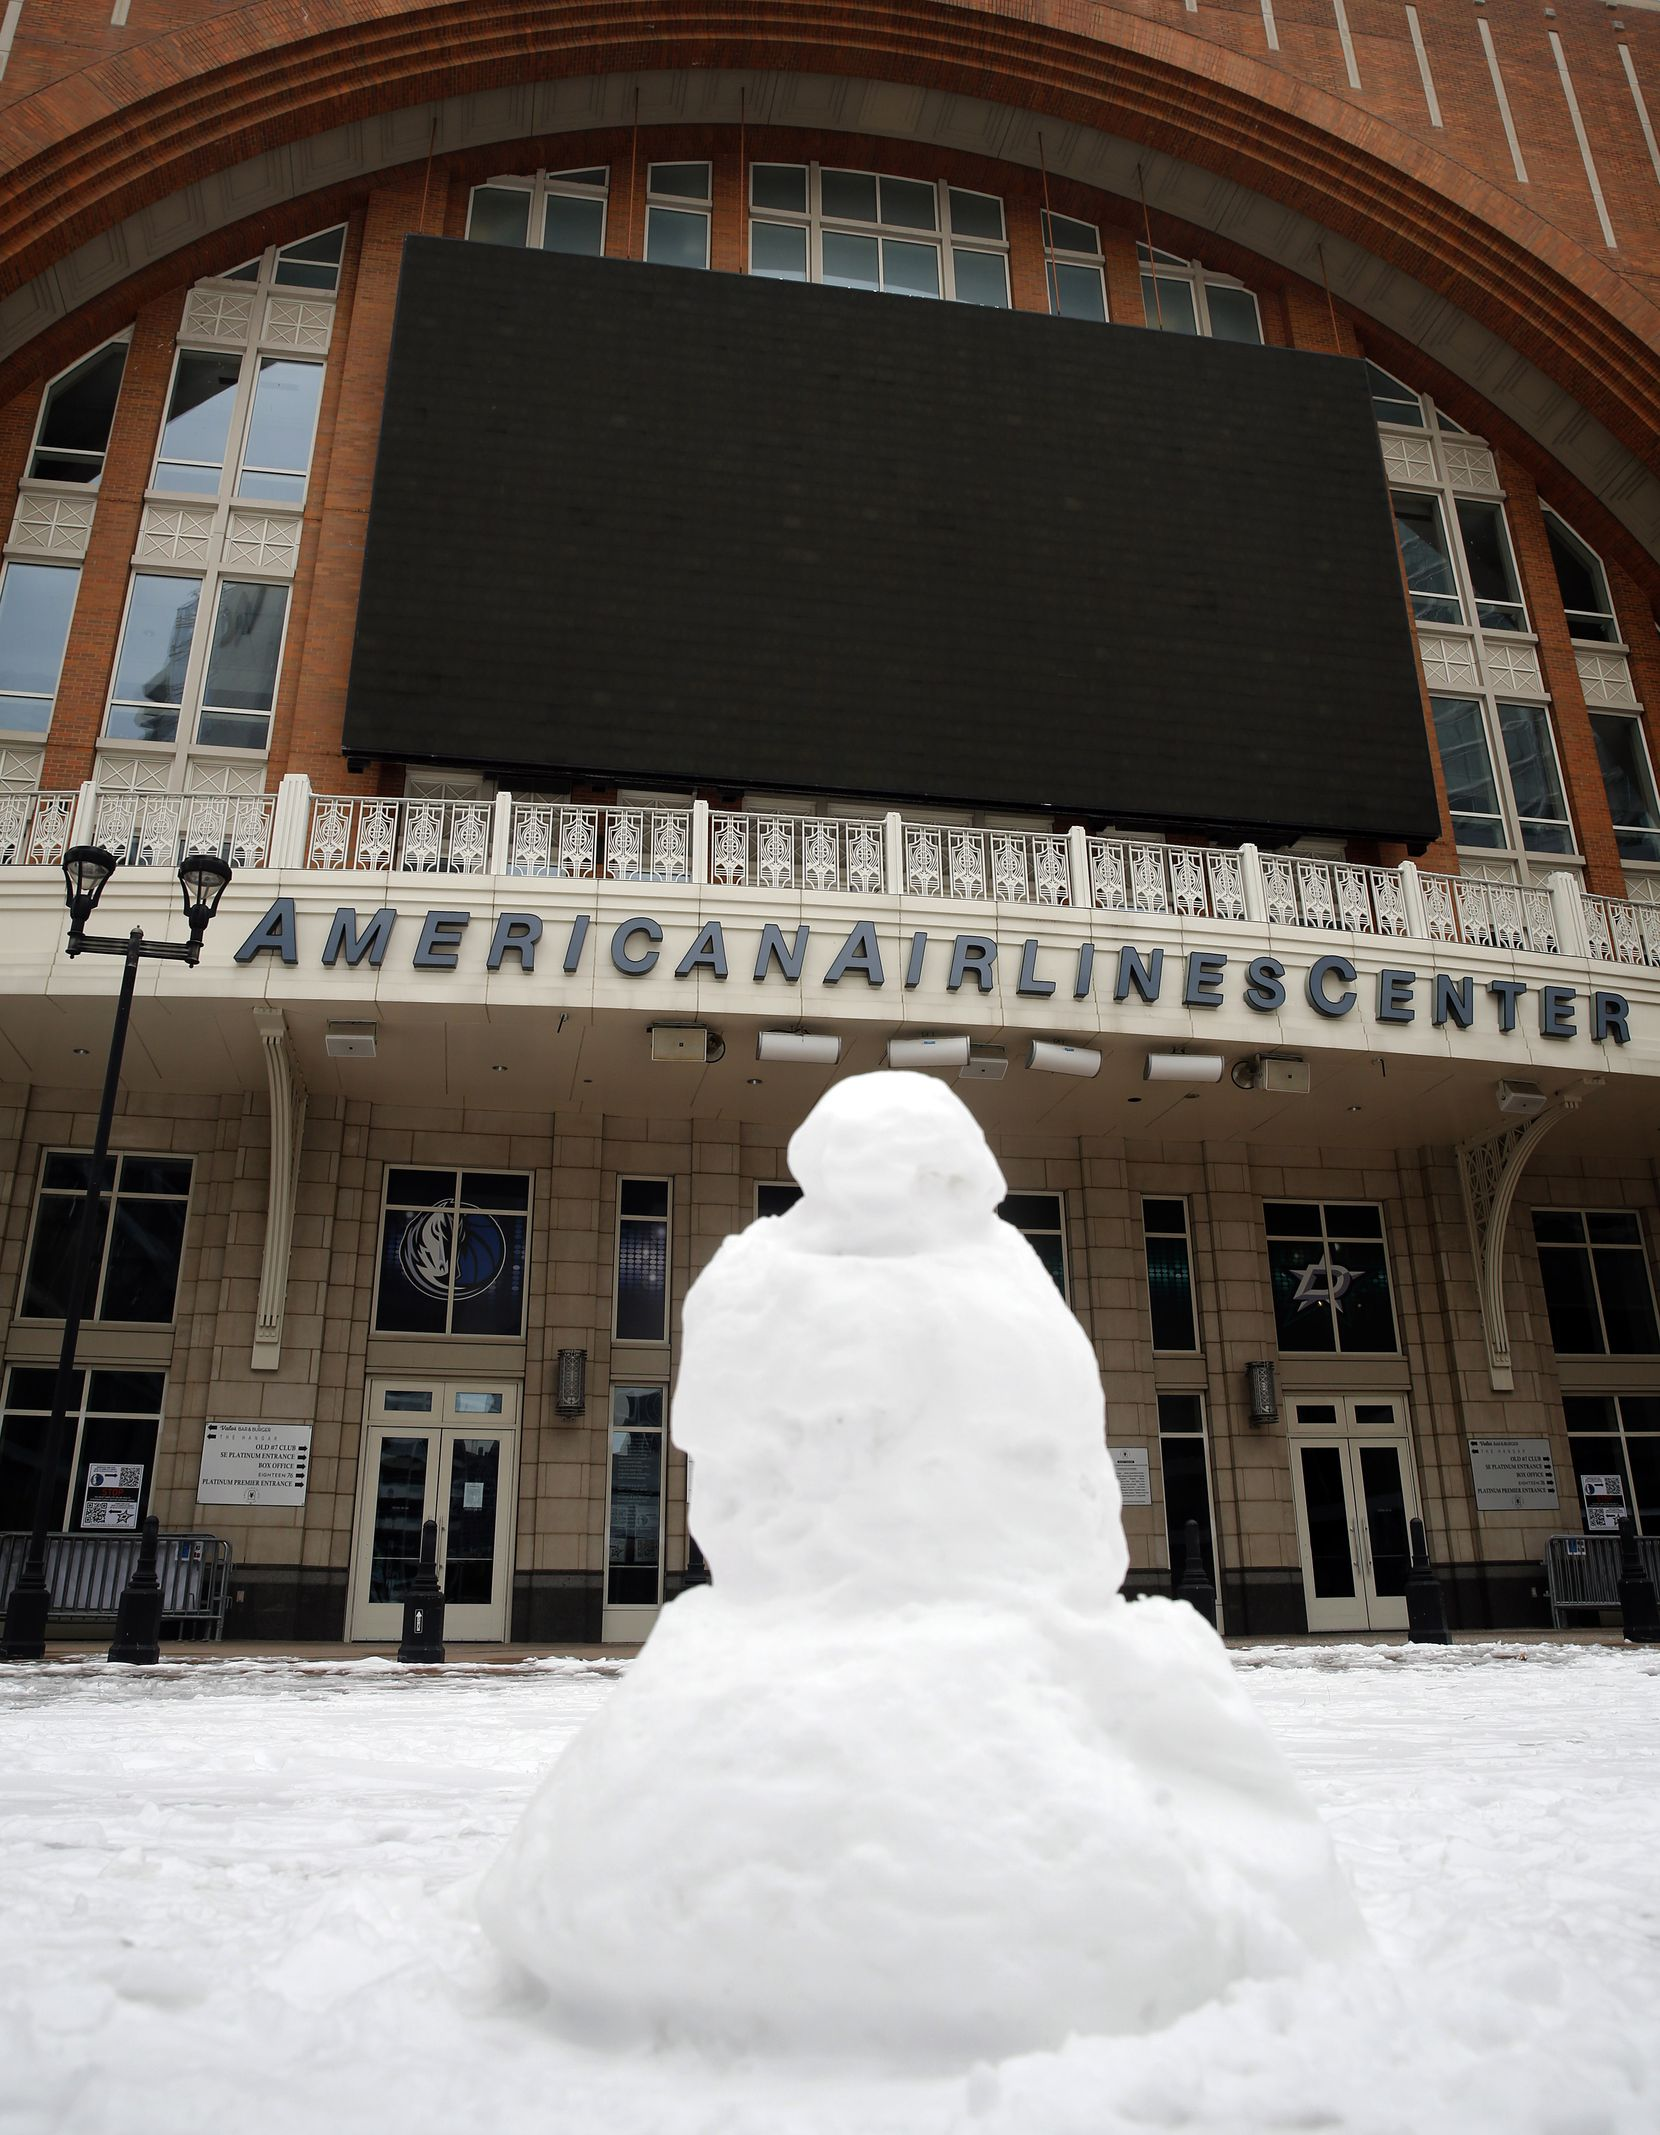 Someone built a snowman on Victory Plaza outside the American Airlines Center in Dallas,  Tuesday, February 16, 2021. Because of the widespread loss of electricity from the snow storm, the Dallas Stars and Dallas Mavericks have canceled games at the darkened arena. (Tom Fox/The Dallas Morning News)